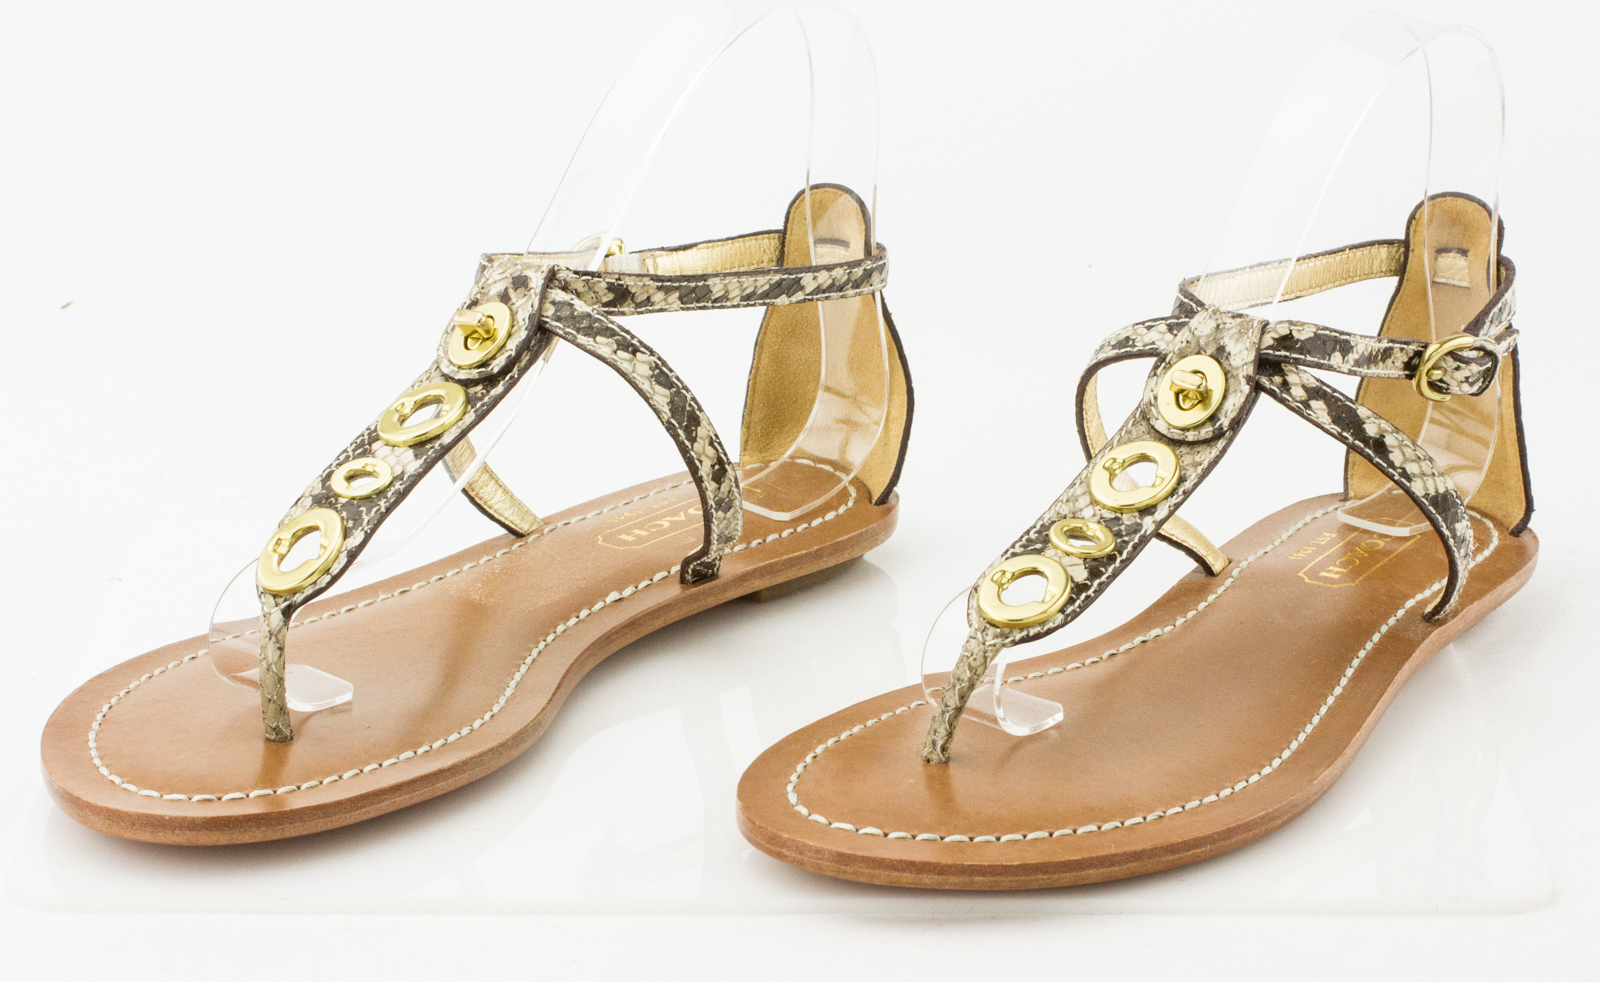 269d1a39d28cb COACH Tan and Brown Snake Skin T-Strap Flat Sandals